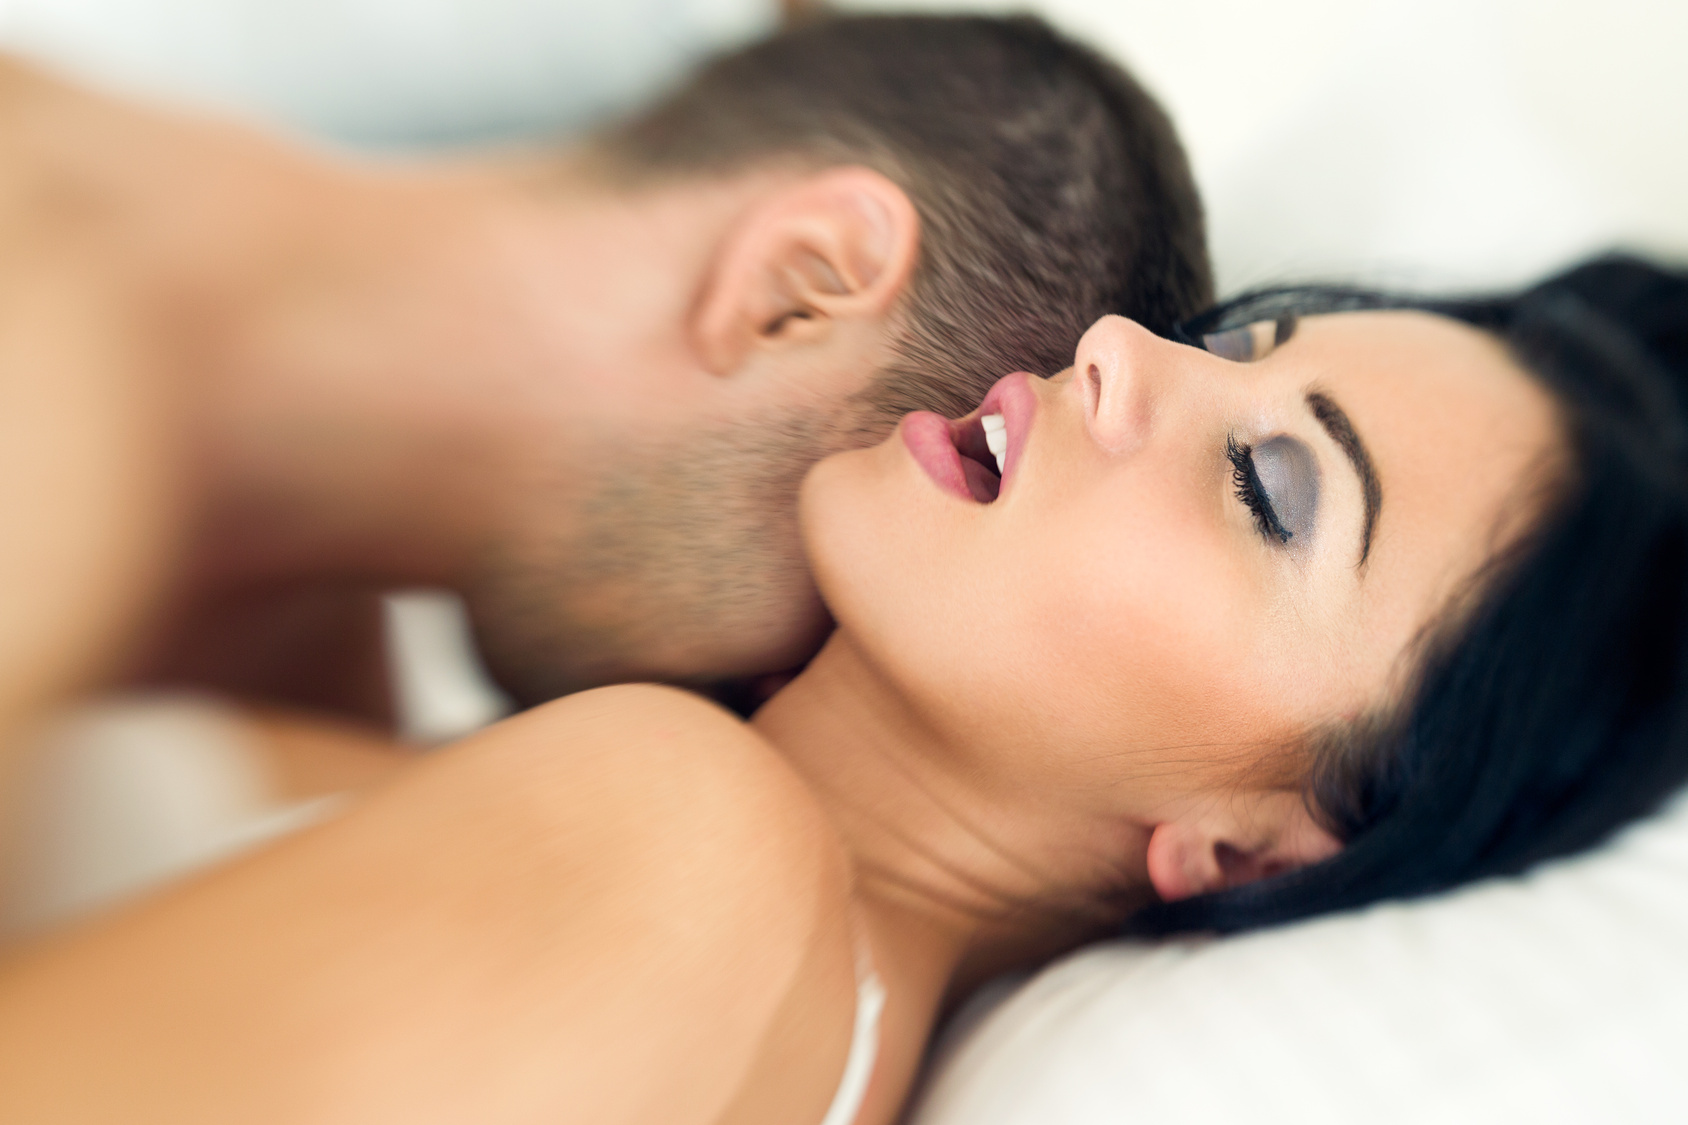 How To Really Satisfy Yourself & Your Girl: understandingrelationships.com/how-to-really-satisfy-yourself-your...